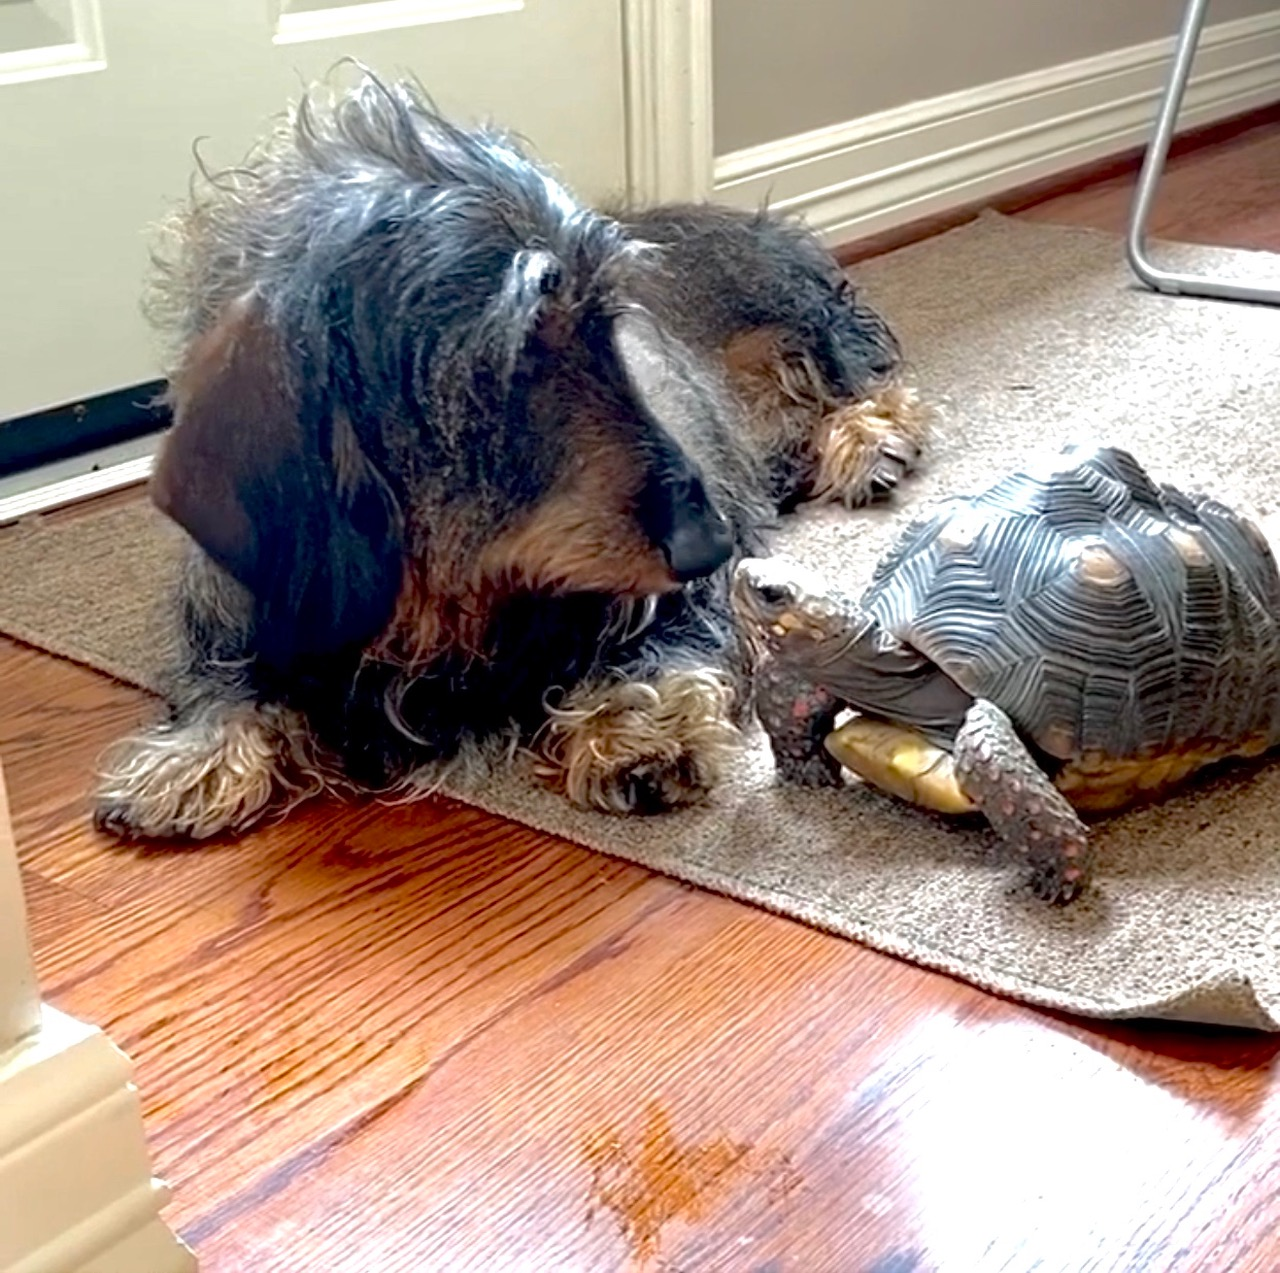 dachshund and tortoise are best friends